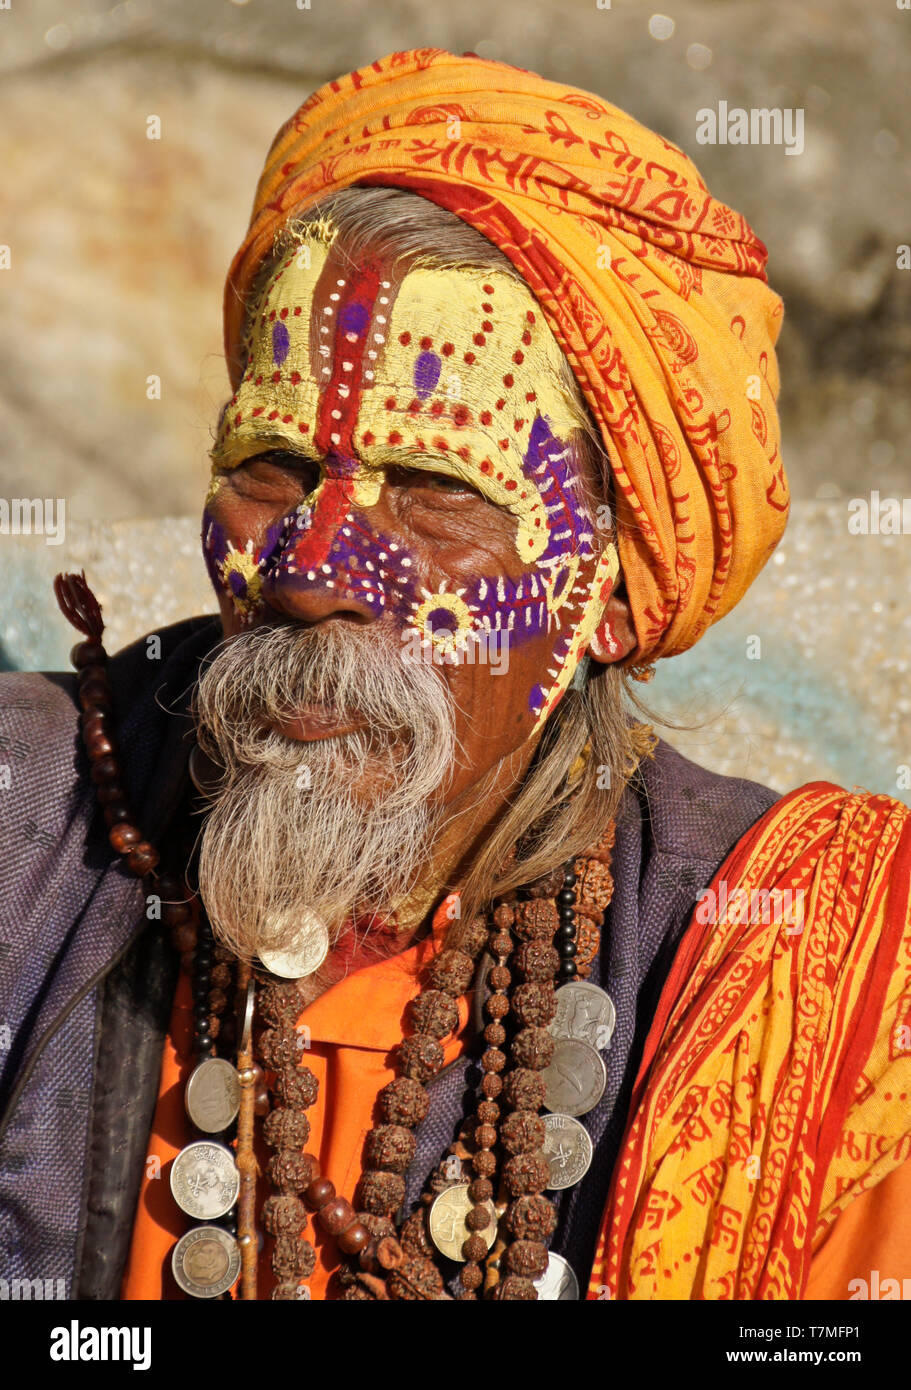 Portrait of a sadhu (holy man) with painted face, clad in orange robes, Pashupatinath Hindu temple, Kathmandu Valley, Nepal - Stock Image